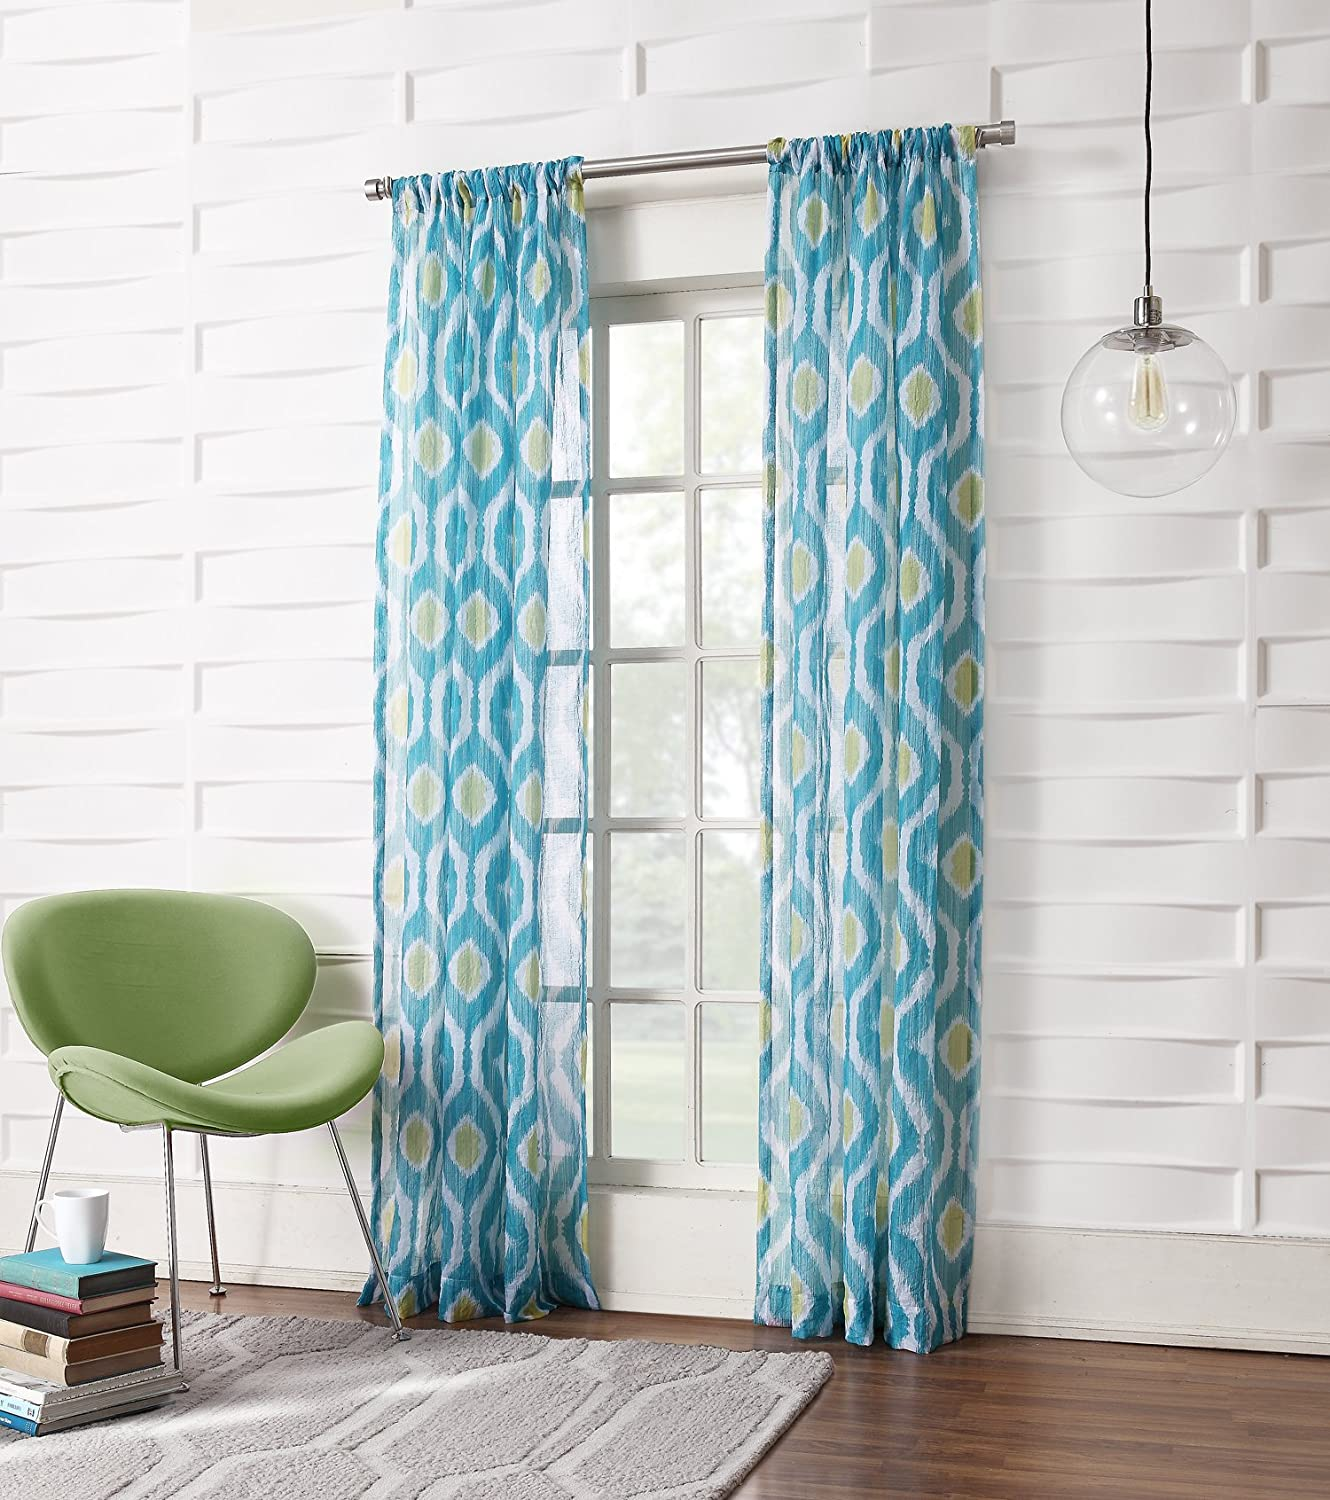 Maddox Ikat Crushed Sheer Voile Curtain Panel Marine Teal